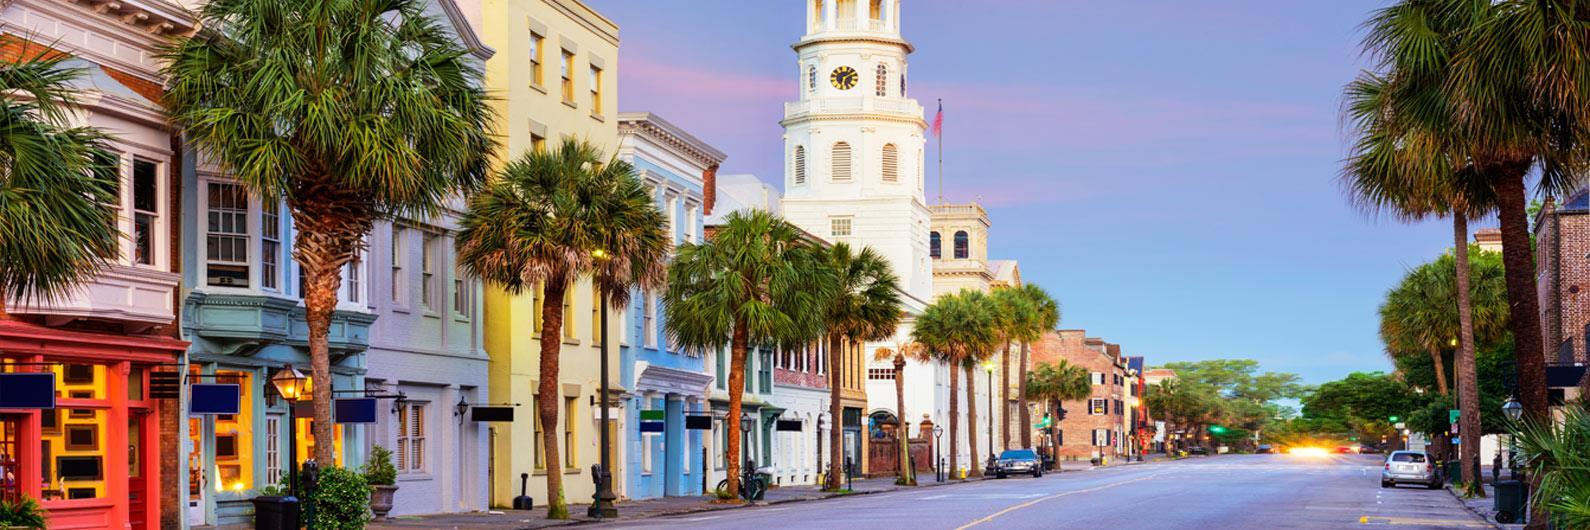 Book Flights To Charleston Chs Frontier Airlines